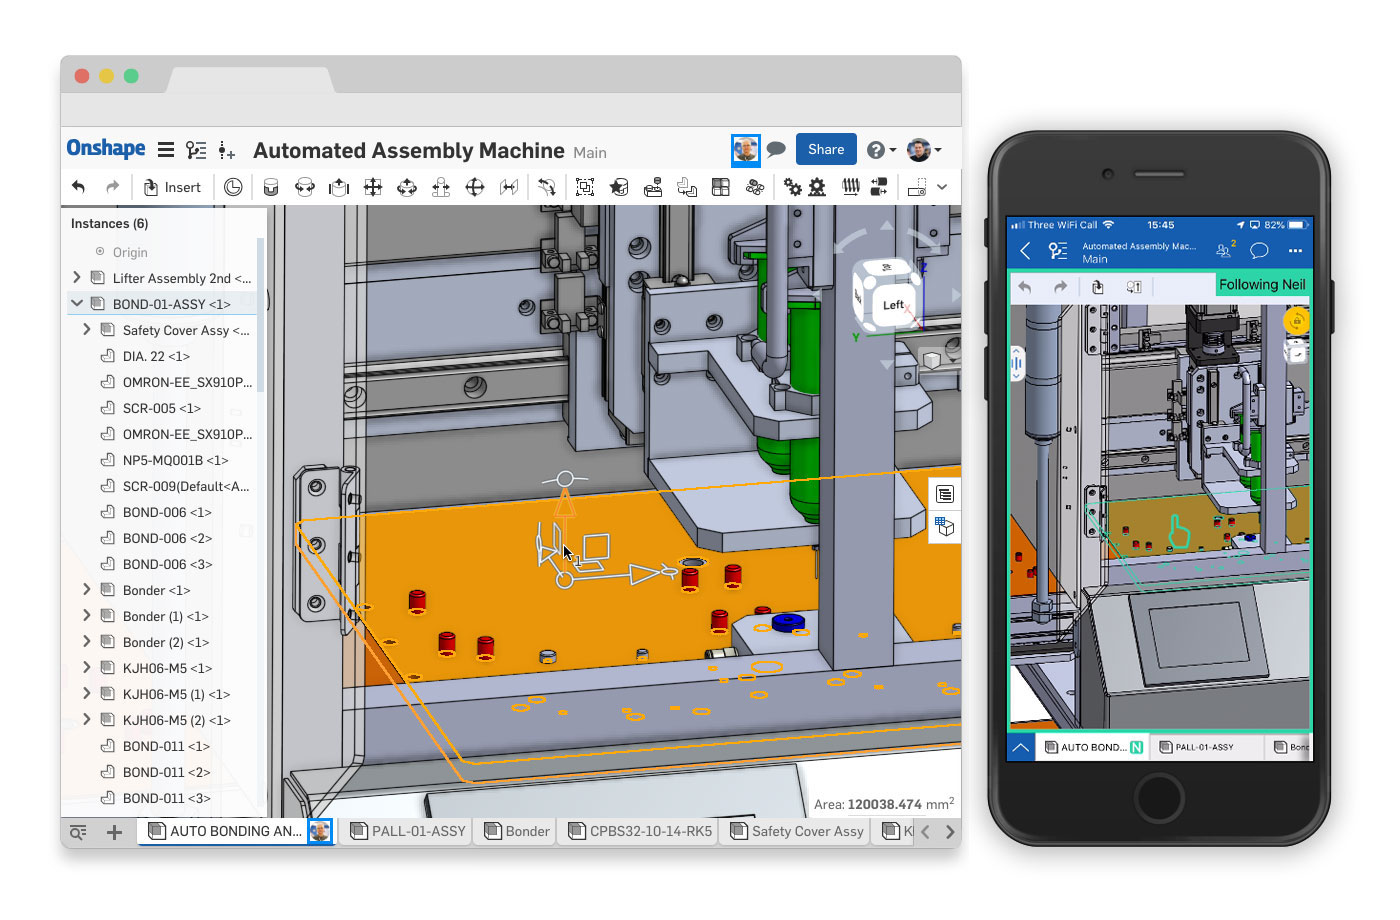 The State of Product Development According to Onshape - Digital